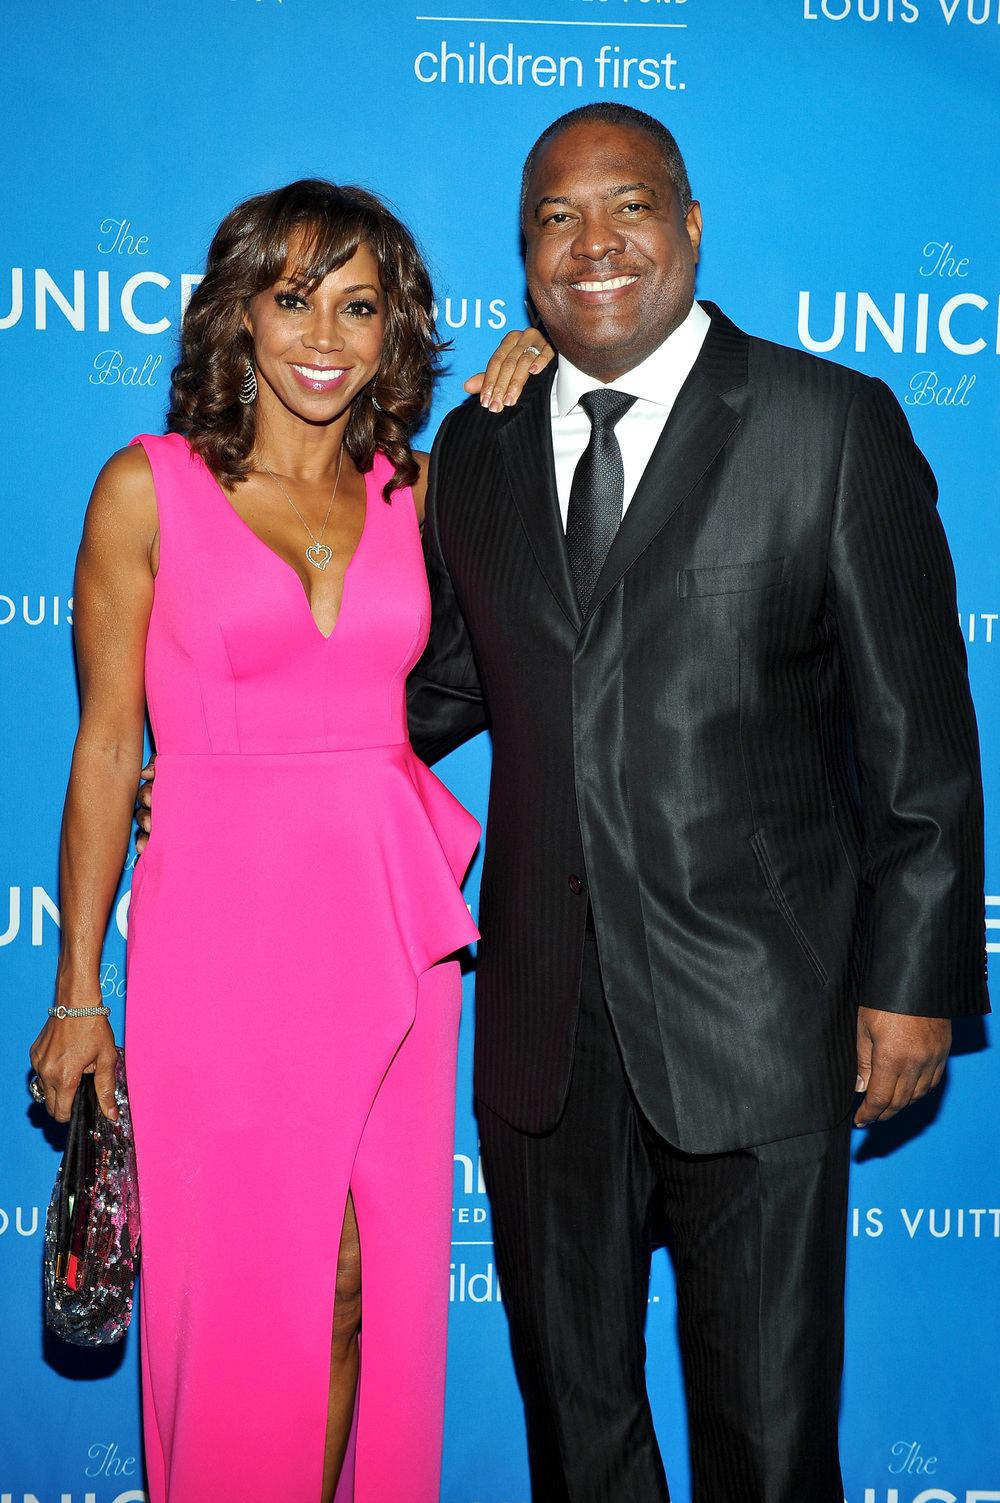 Holly Robinson Peete and Rodney Peete attend the 2016 UNICEF Ball